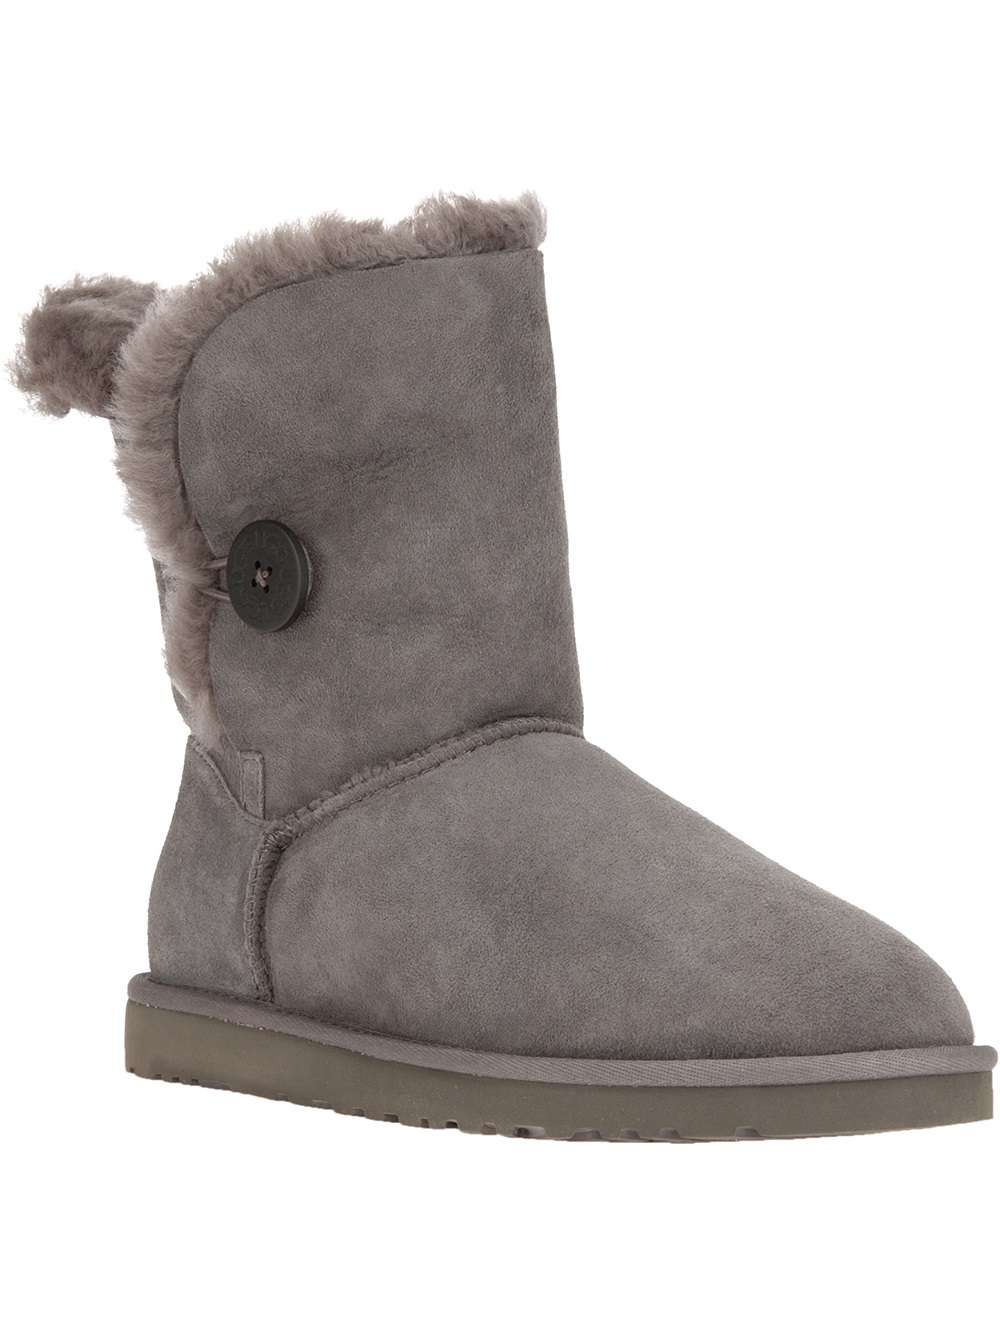 ugg baily ankle boot in gray grey lyst